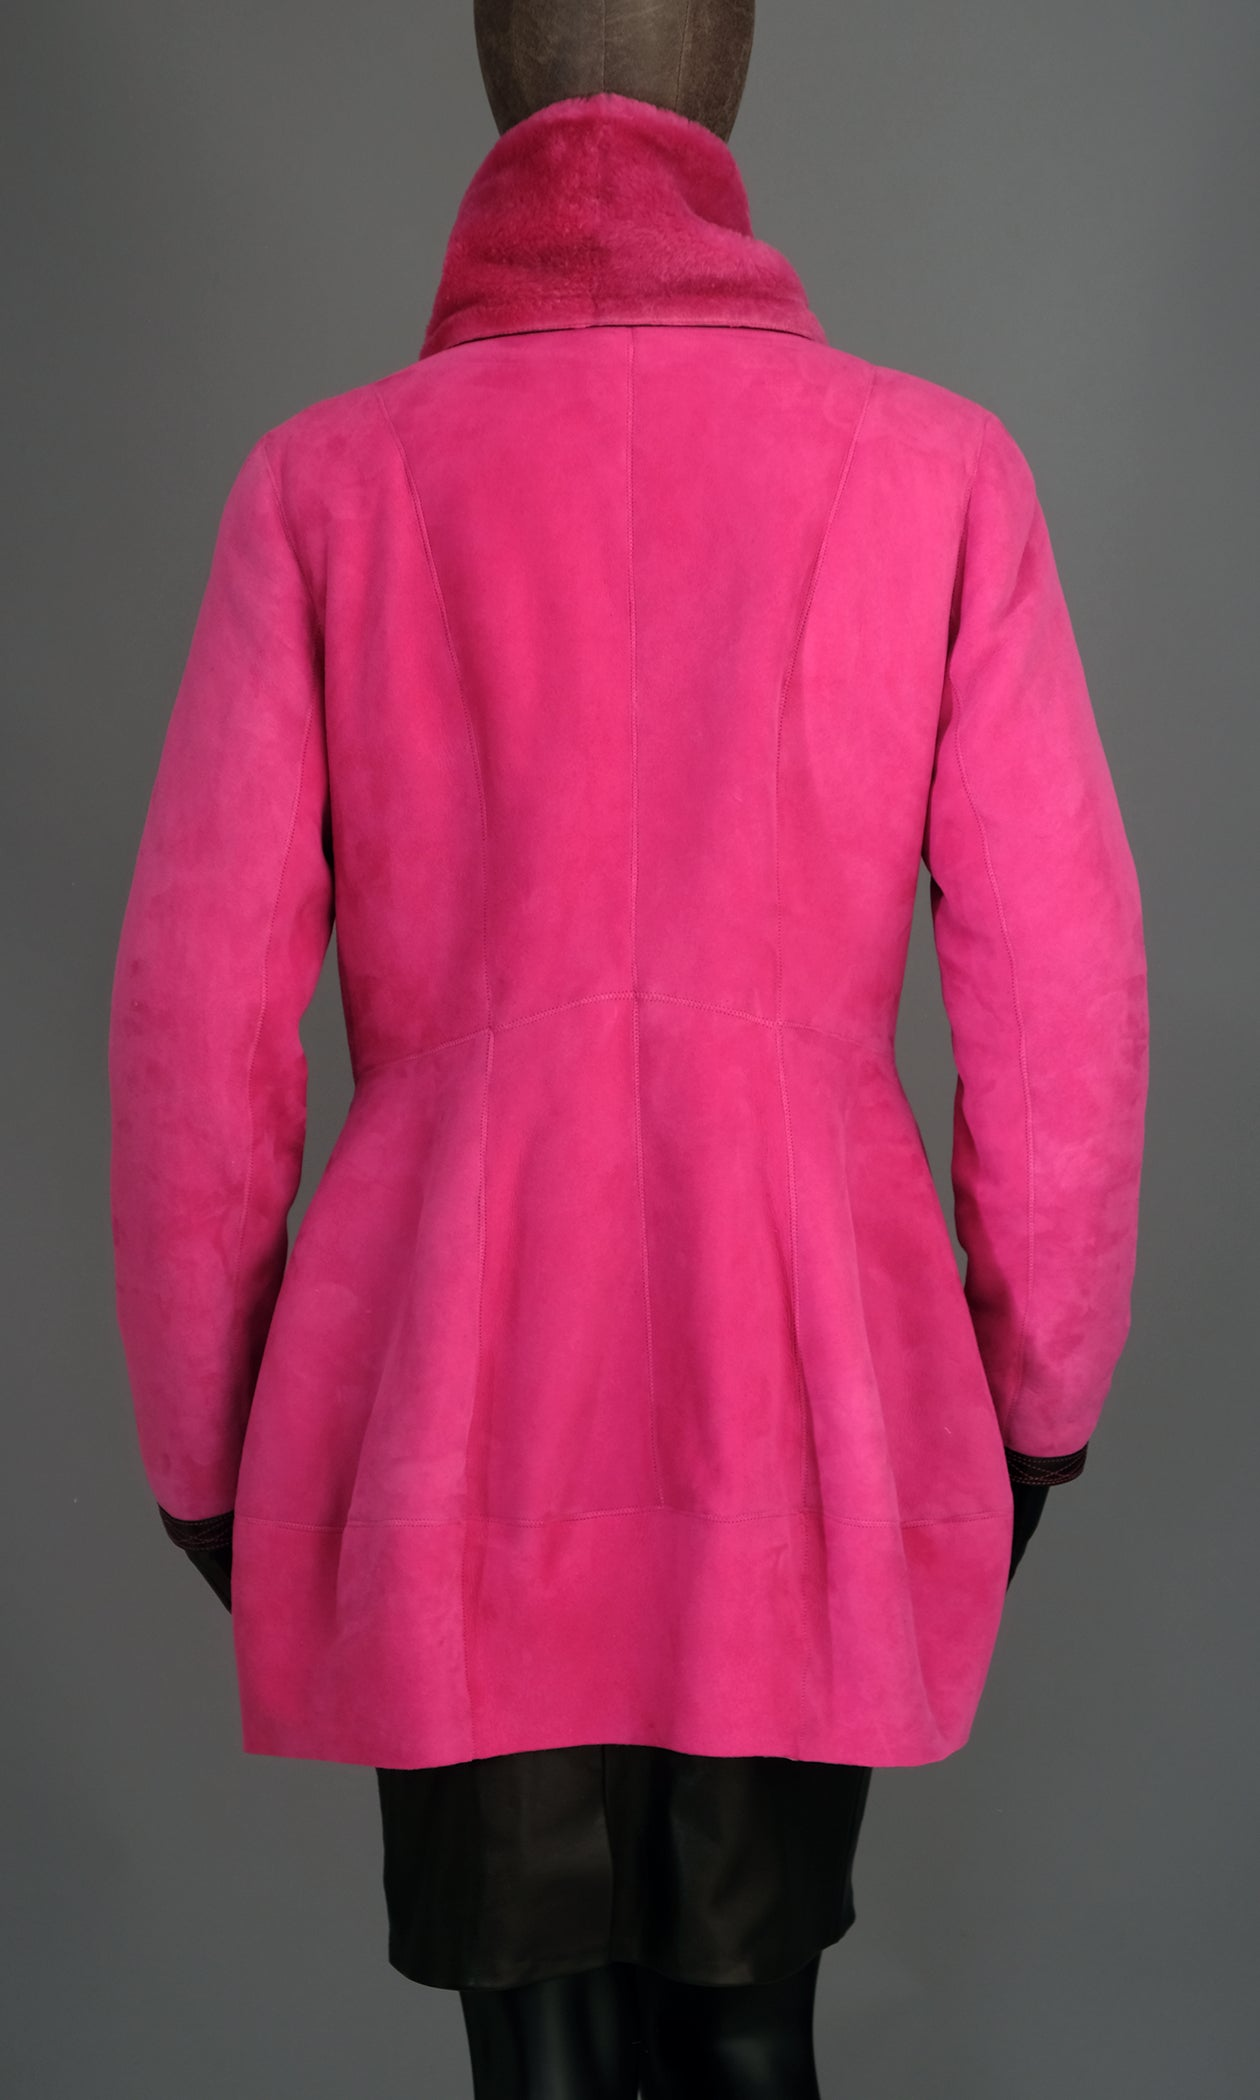 Pink Shearling Inverted Peplum Jacket size medium.jpg